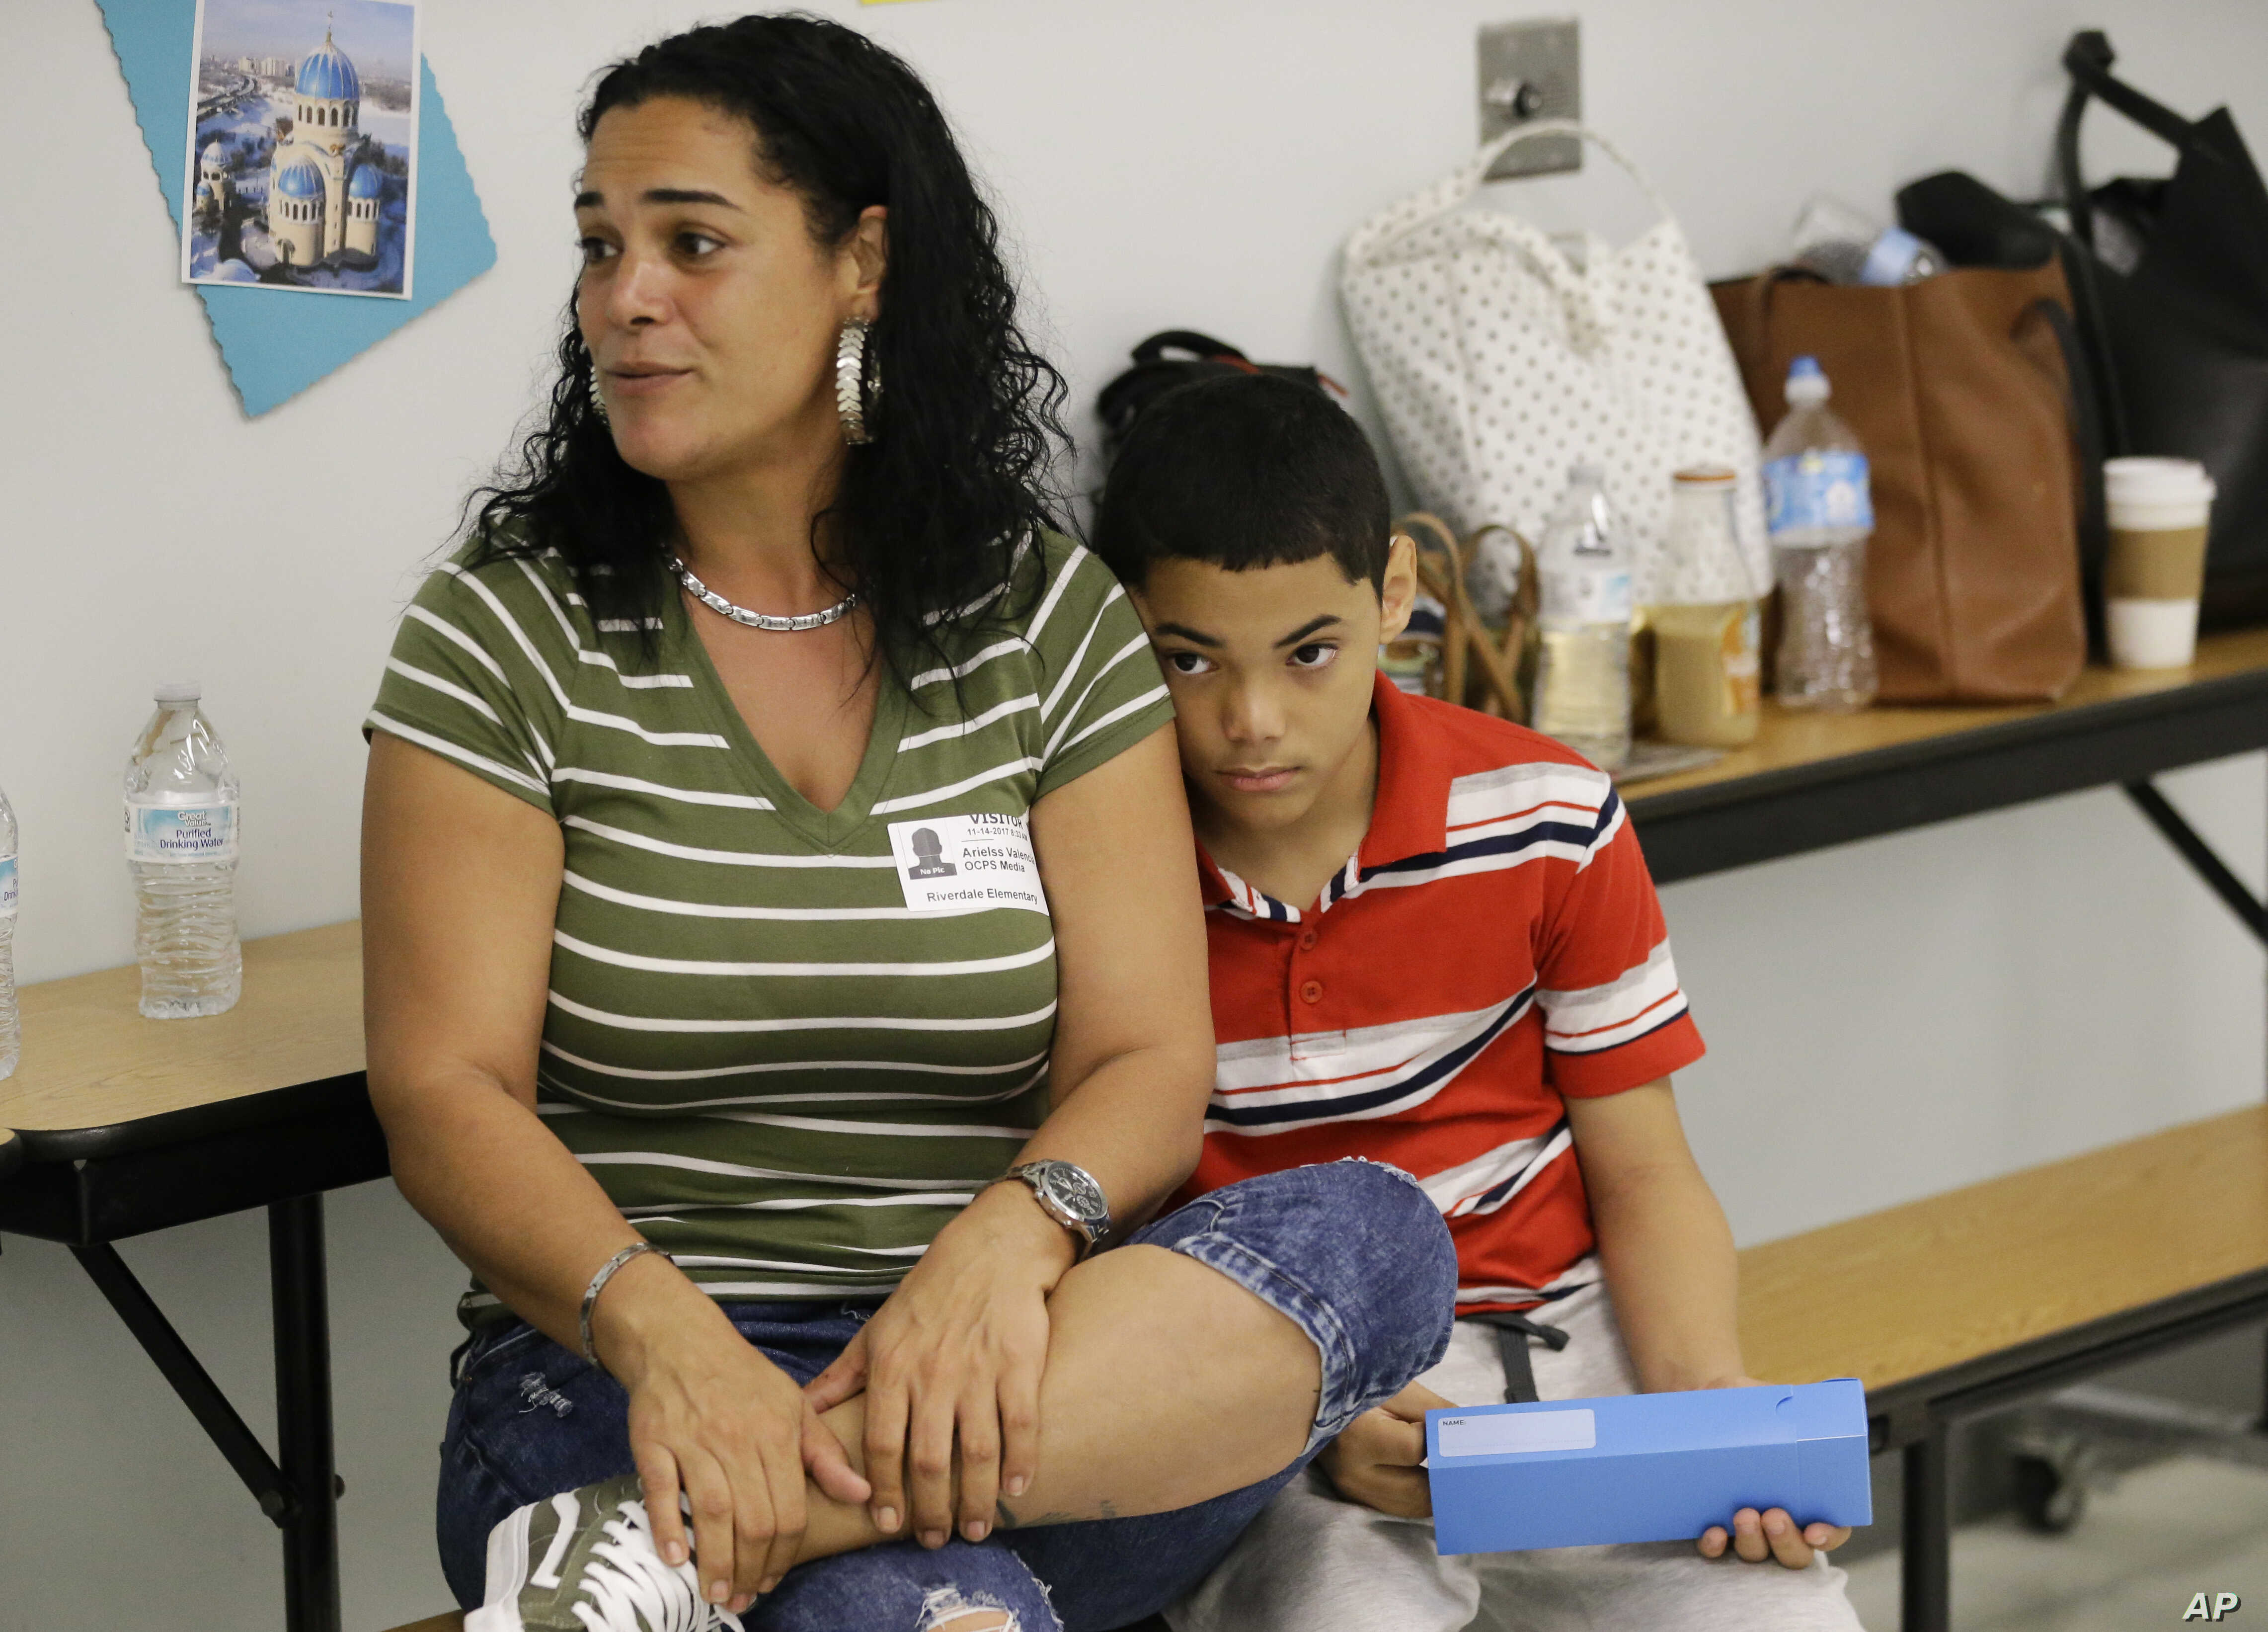 Recent transplant from Puerto Rico, Arieliss Valencia sits next to her son Anthony, a fifth grader at Riverdale Elementary School in Orlando, Fla. Anthony left Puerto Rico with his family after Hurricane Maria destroyed his home.